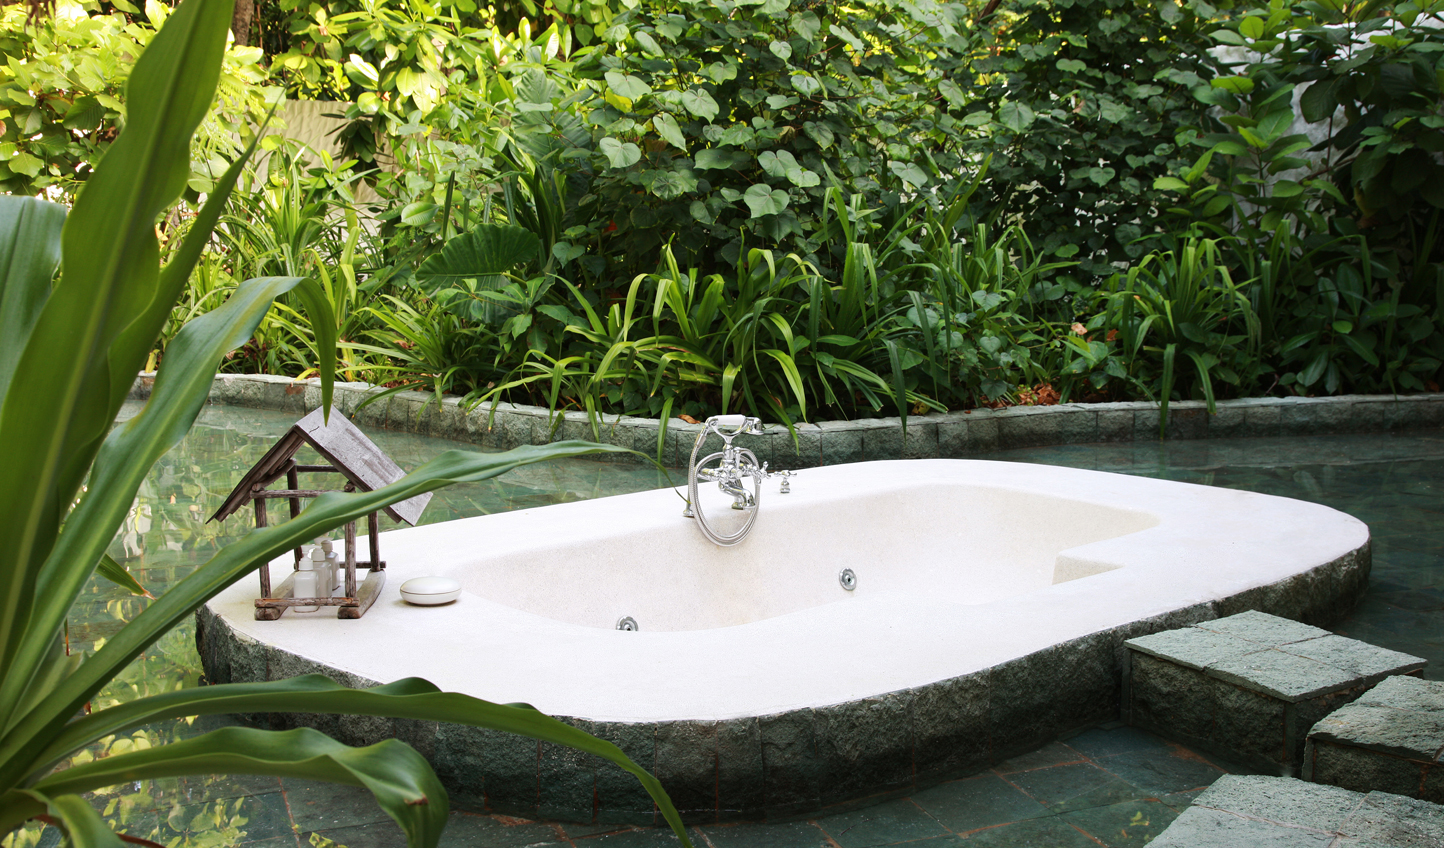 Surround yourself with an unspoilt paradise in your outdoor bathroom